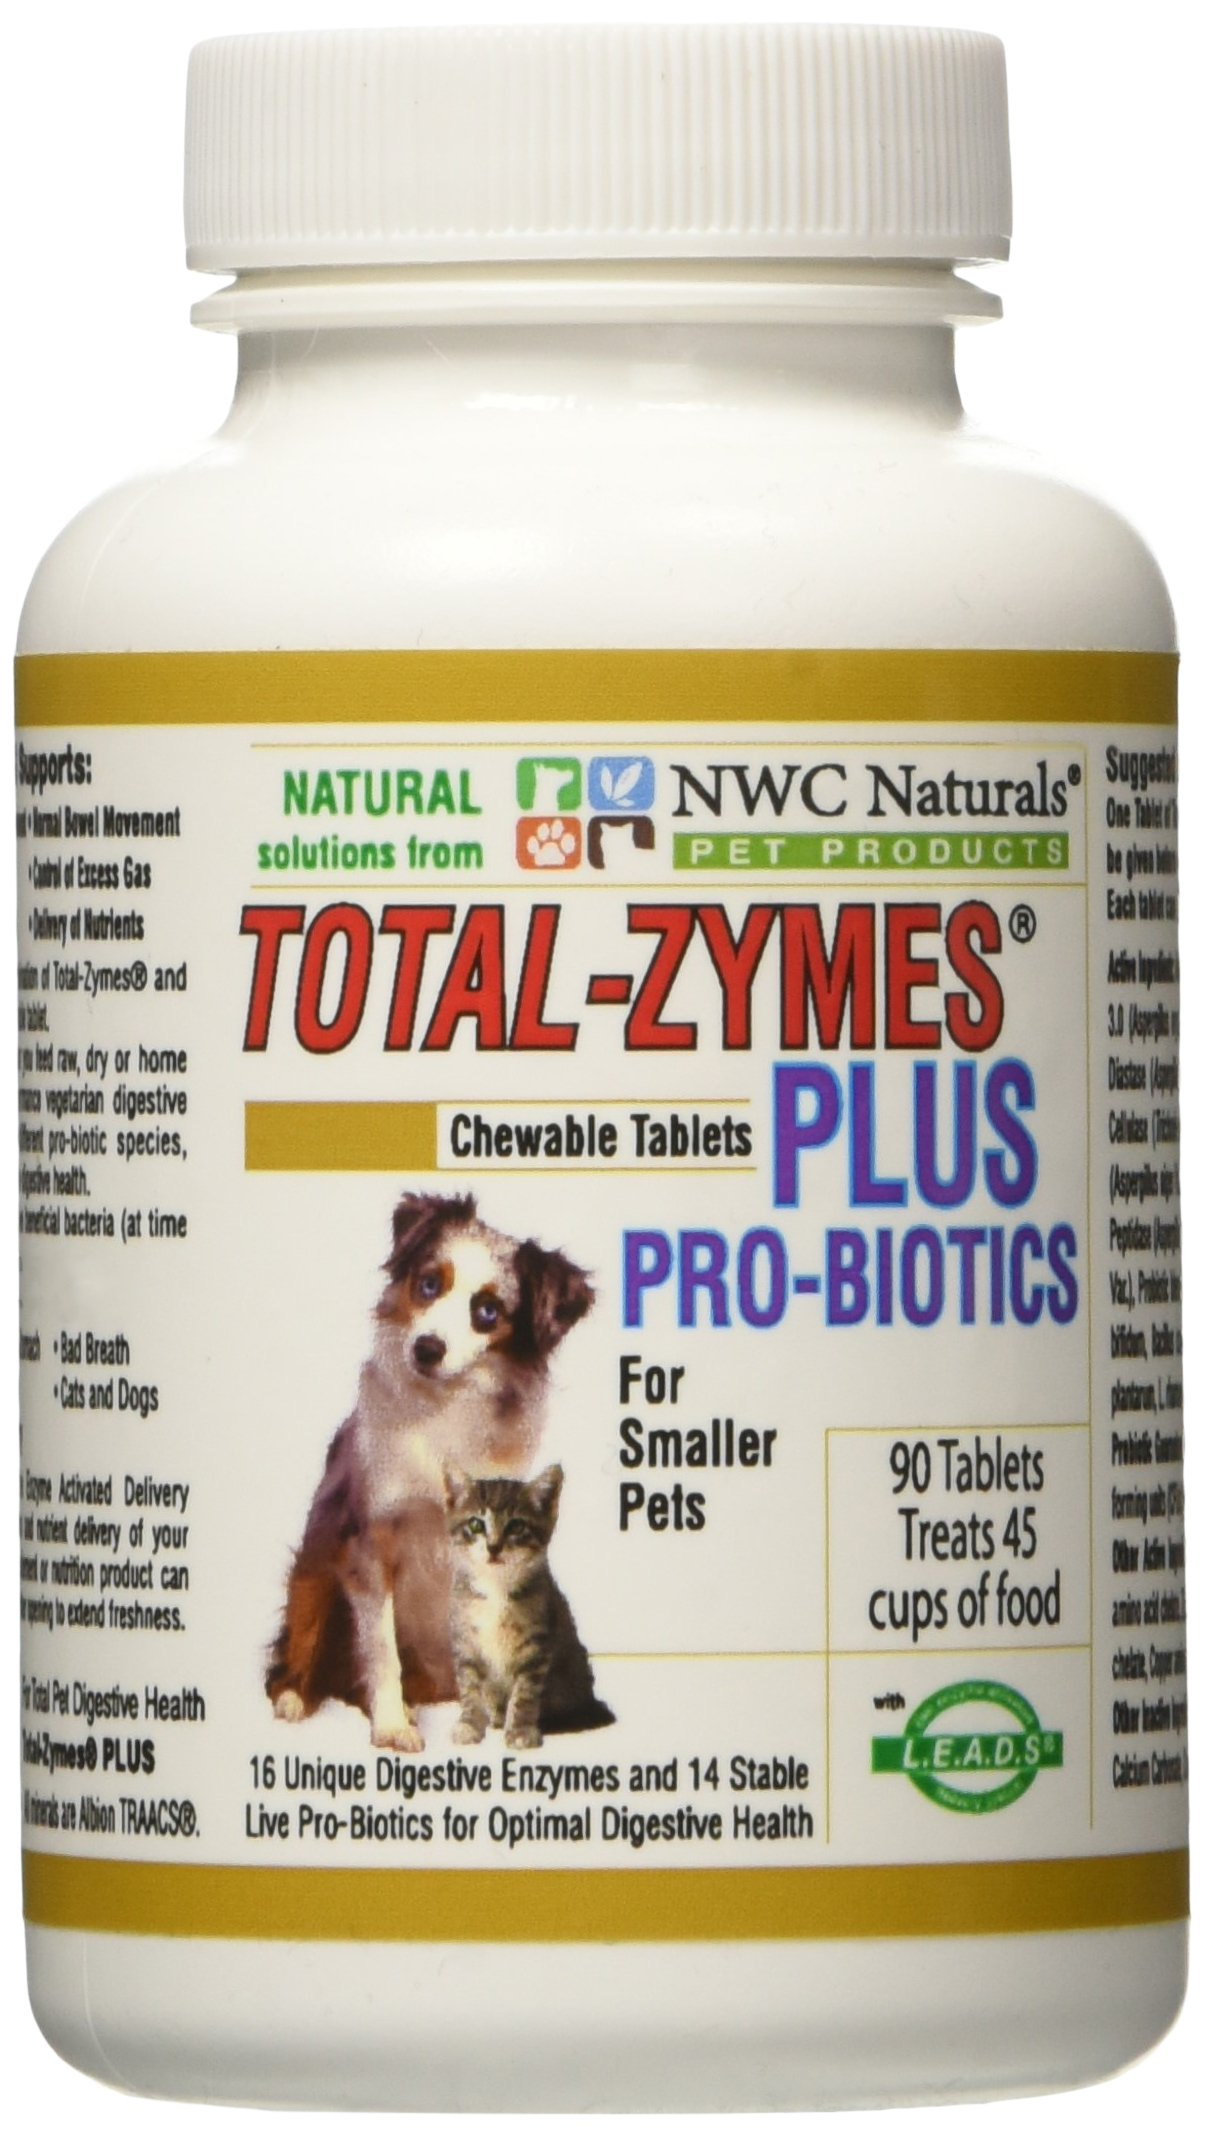 NWC Naturals Total-Zymes Plus - 90 Tablets (1 tablet treats 1/2 cup of pet food) Enzymes and Probiotics for smaller Dogs and Cats